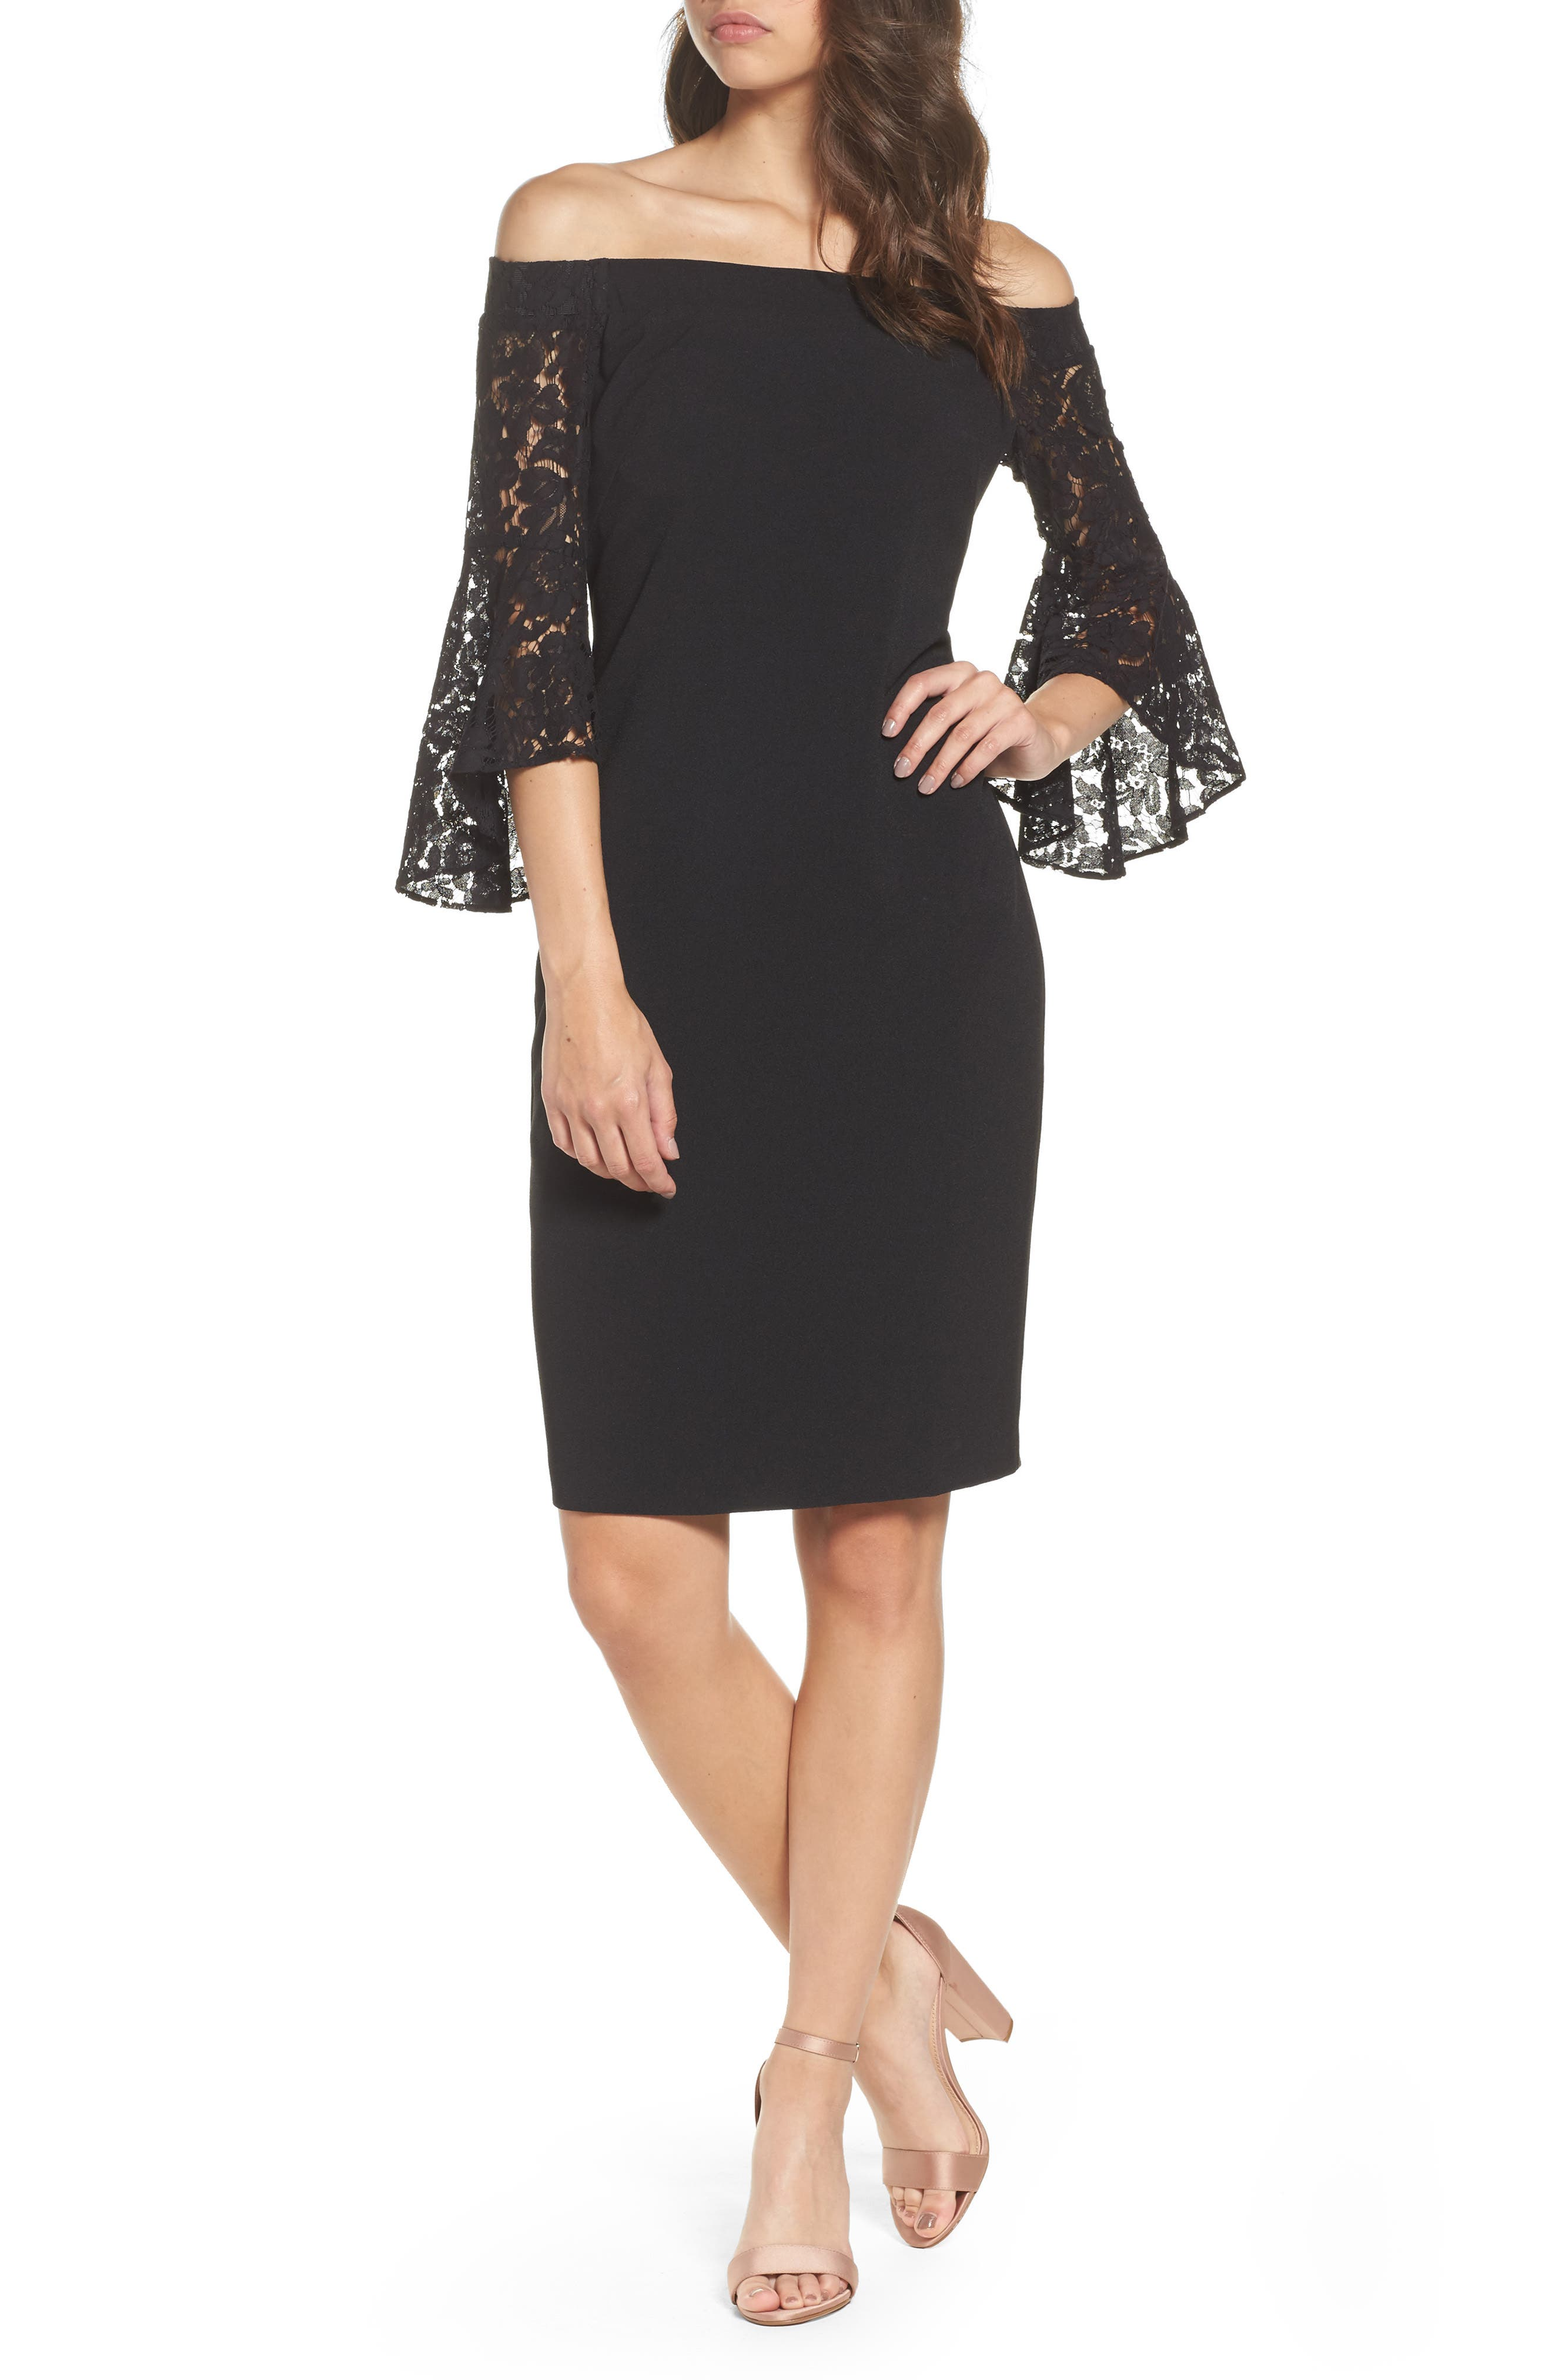 Main Image - Chelsea28 Off the Shoulder Lace Dress